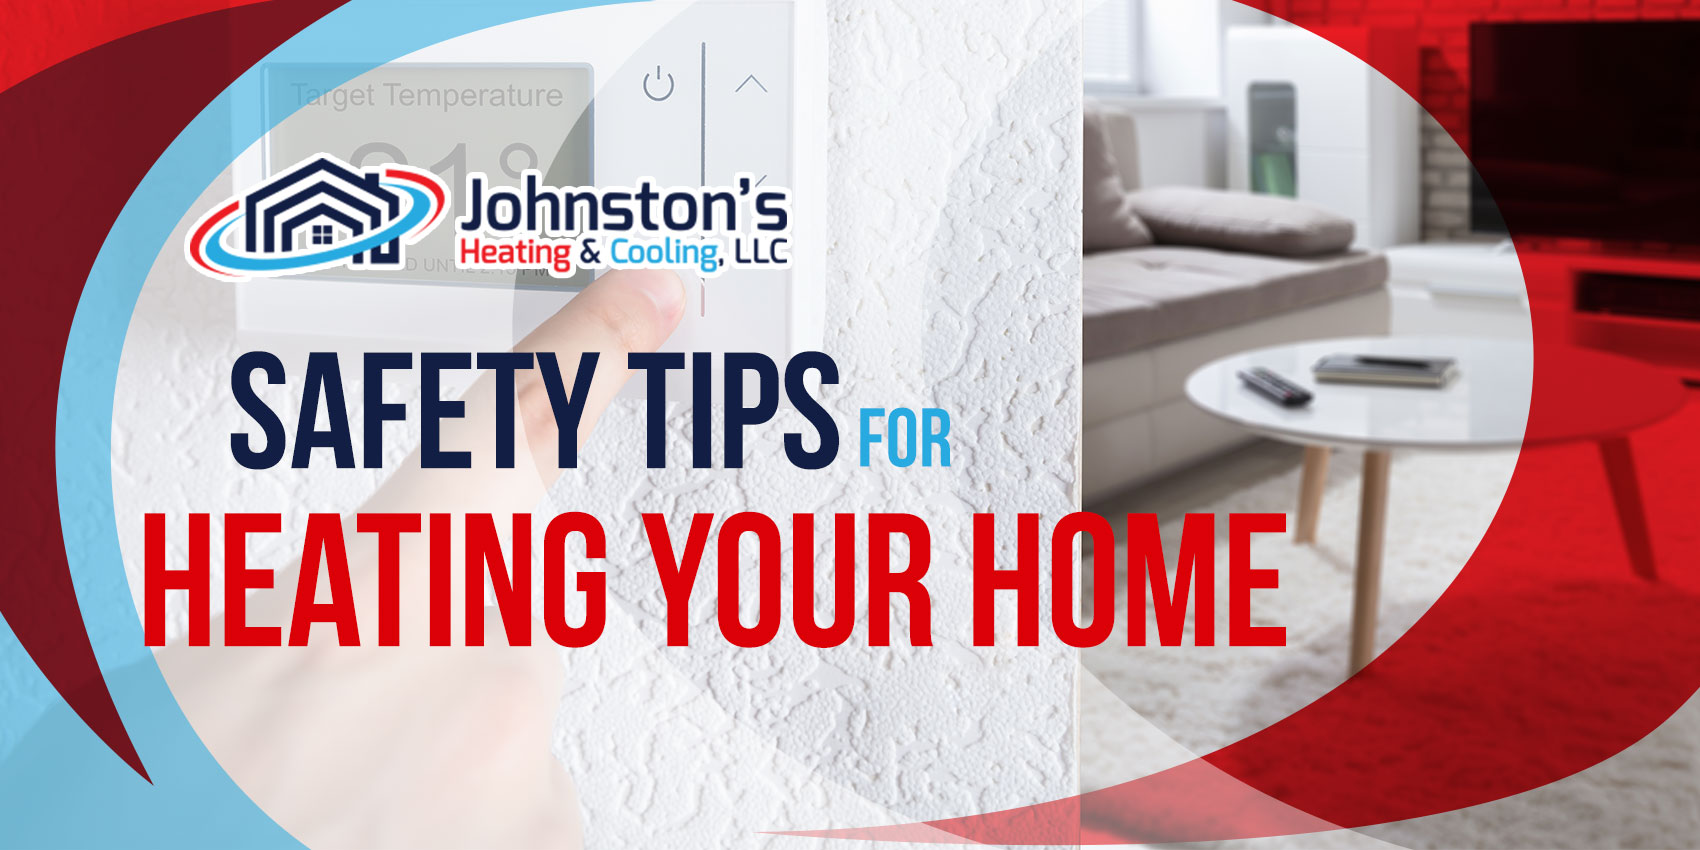 Safety Tips for Heating Your Home